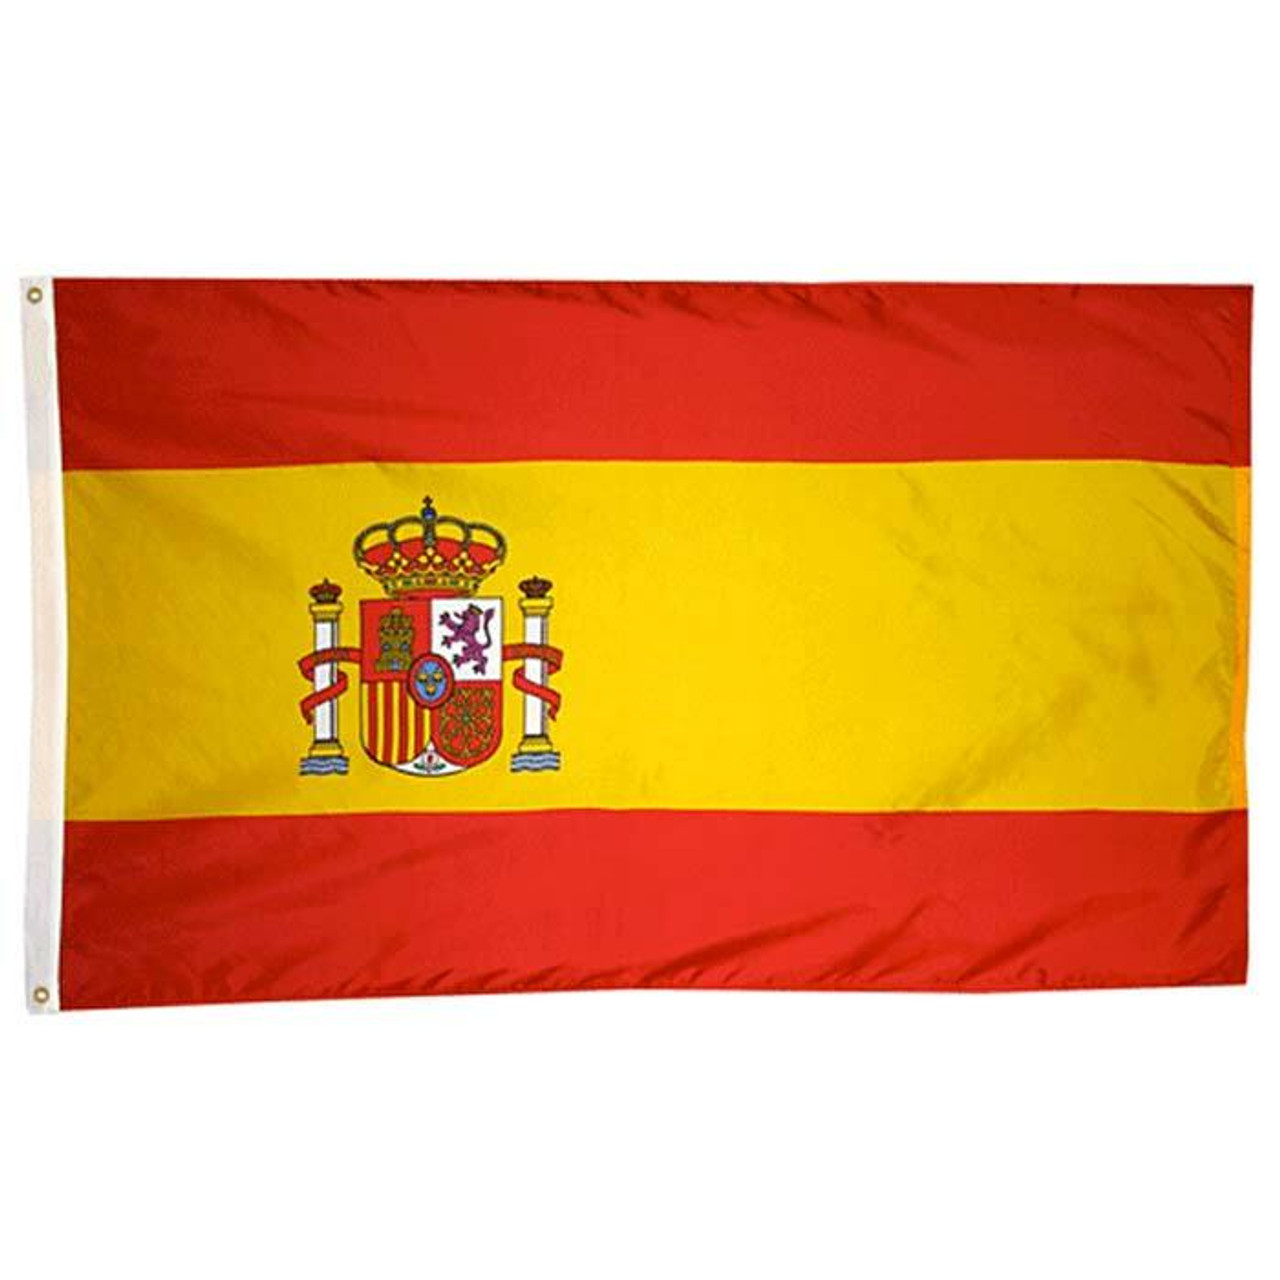 """The Spain flag, a tricolor rectangular flag consists of two smaller red stripes at the top and bottom with a yellow stripe that is twice the width of the red. Closer to the white canvas header with brass grommets, on the left-hand side, and in the middle of the yellow stripe, you will find the coat of arms of Spain. The coat of arms has a gold and red crown above the blazon. The blazon is separated into four parts. Each part represents the medieval kingdoms that came together to form the Spanish monarchy. On either side of the blazon, are the Pillars of Hercules with crowns on top of them. The motto """"Plus Ultra"""" can be found on red banners that wrap around the pillars. On the flag's left side (the hoisting side) are a canvas header and brass grommets for easy attachment to flagpoles."""